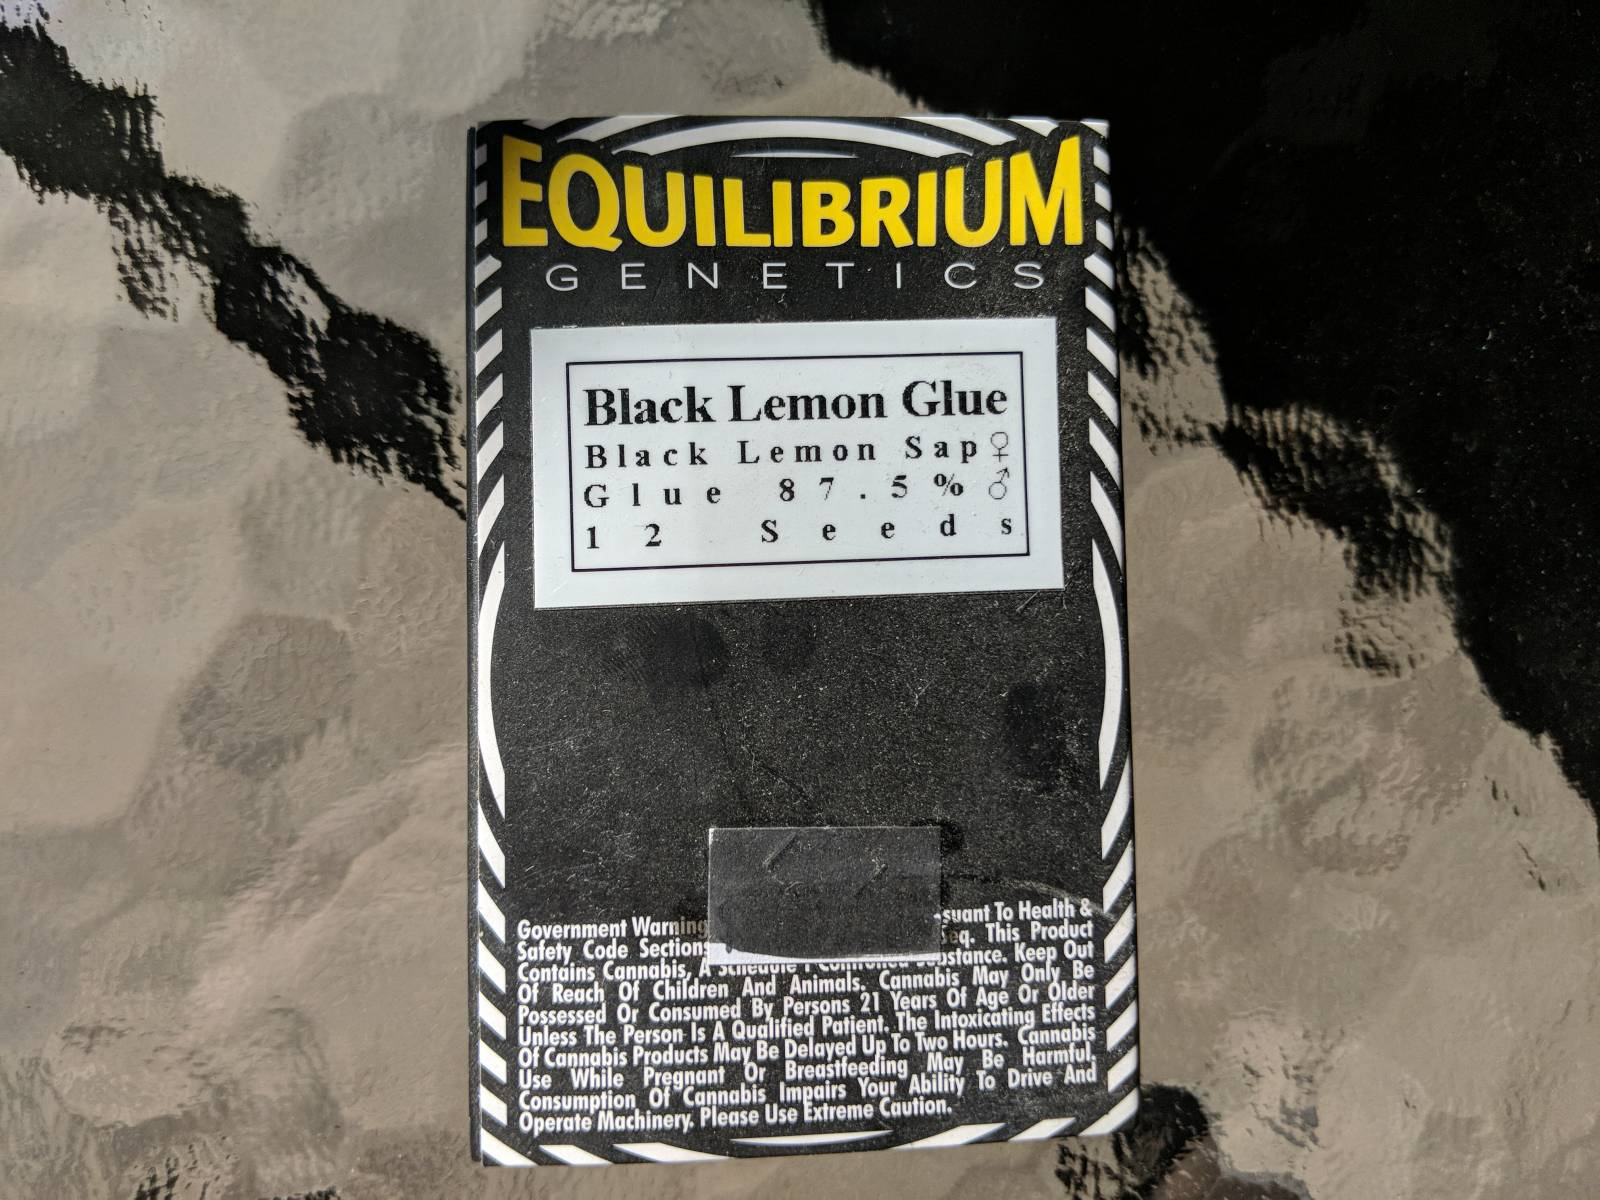 Equilibrium genetics black lemon glue 12 seeds